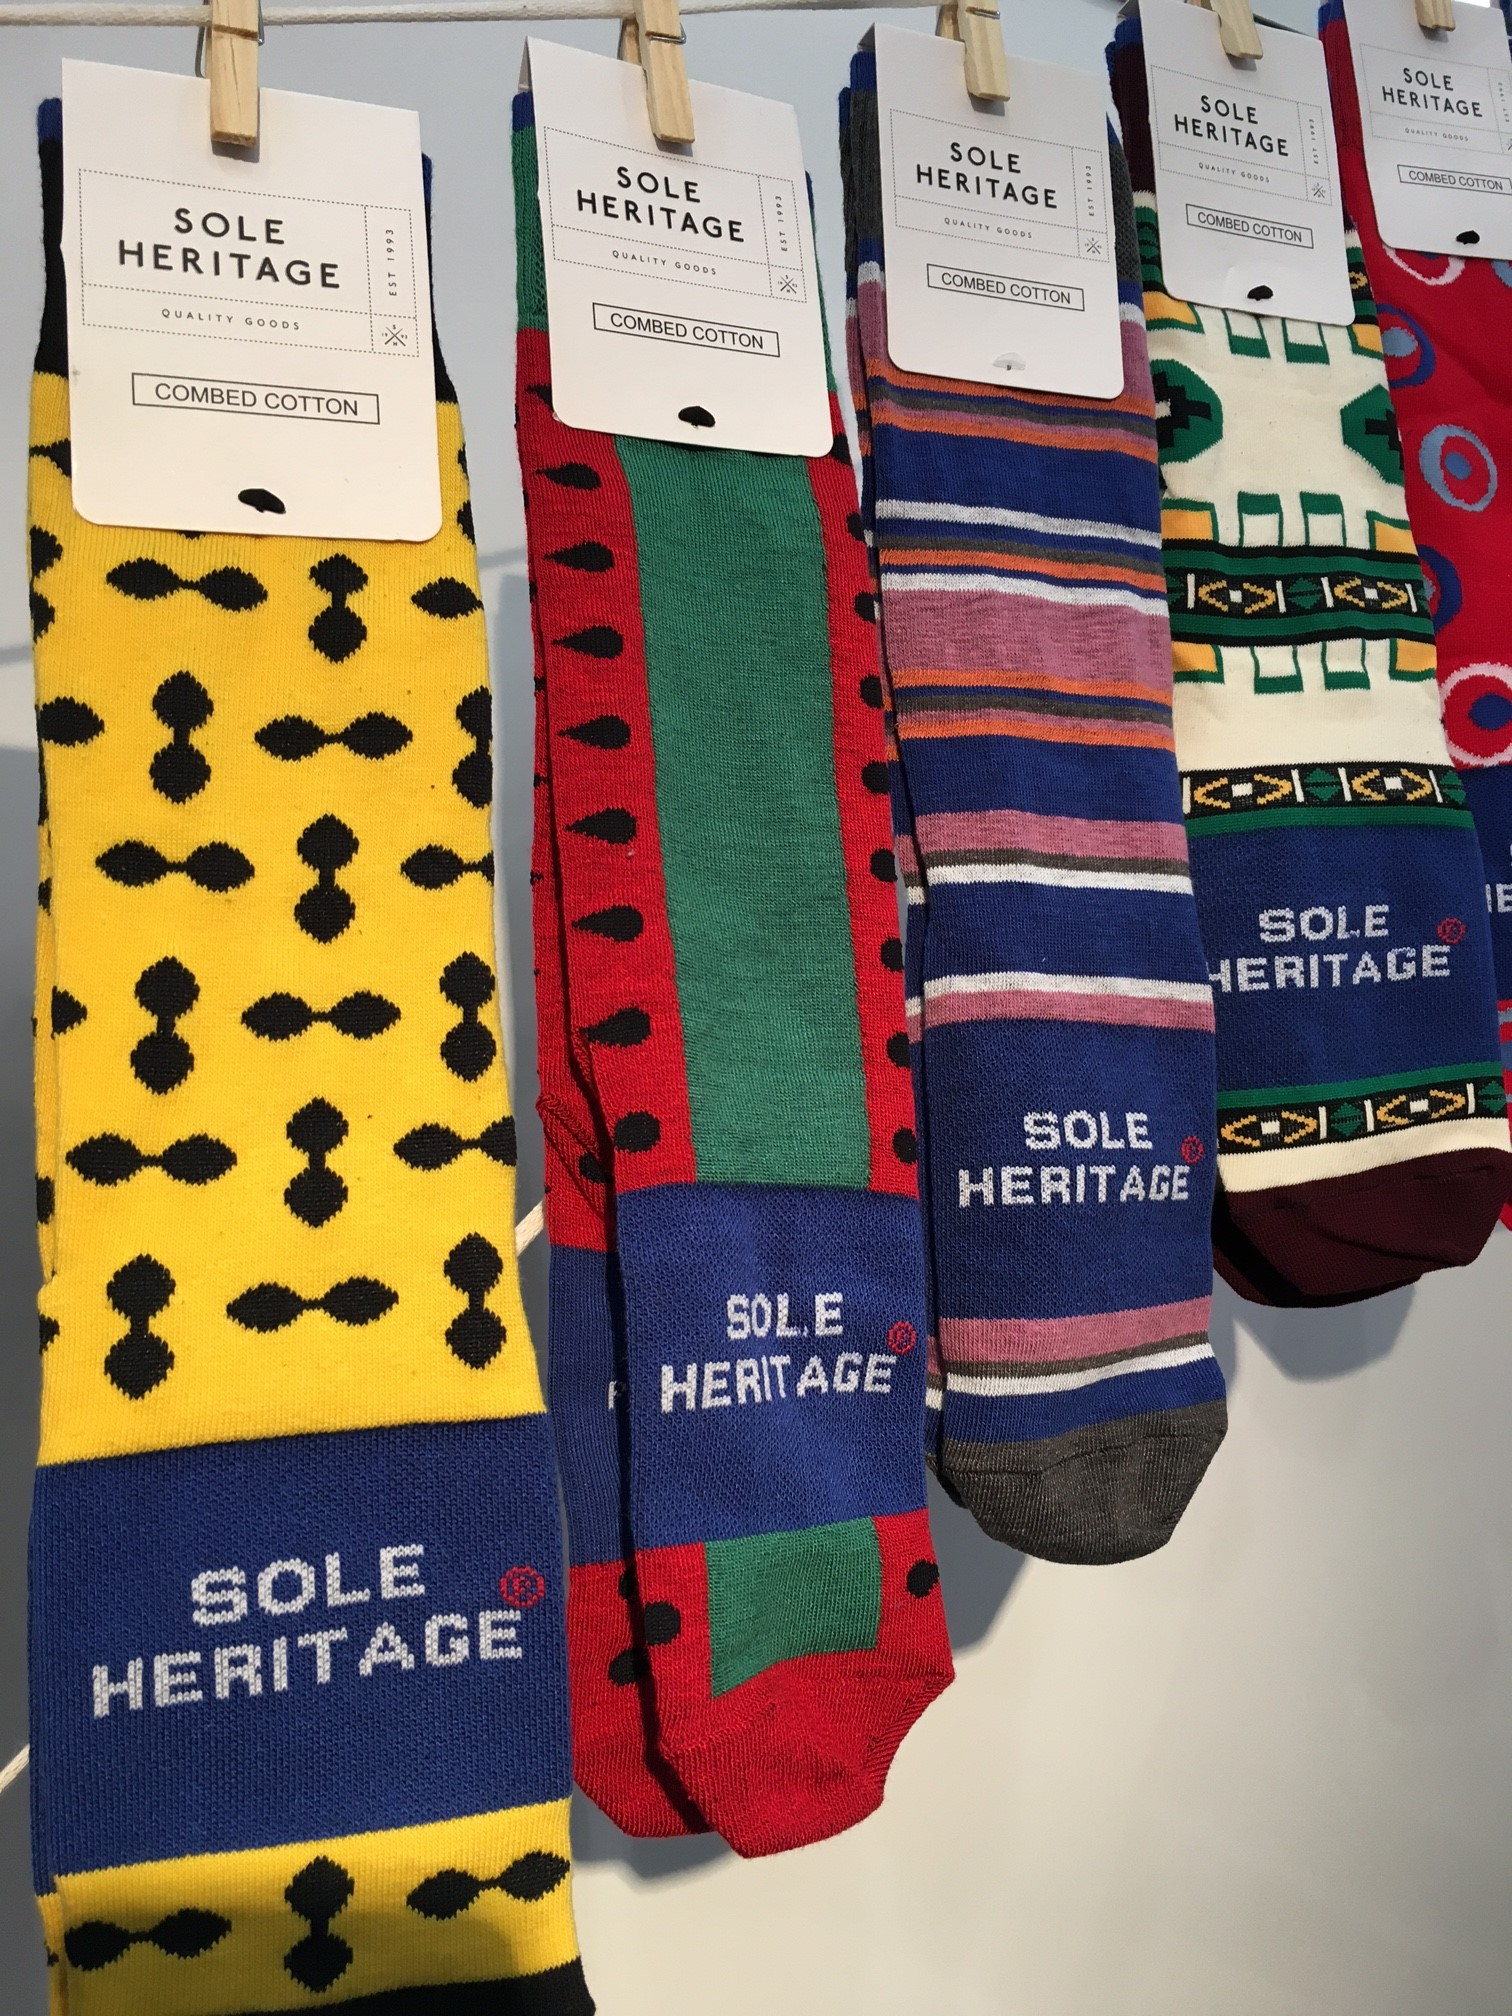 Sole Heritage socks at ASD Hosiery's booth